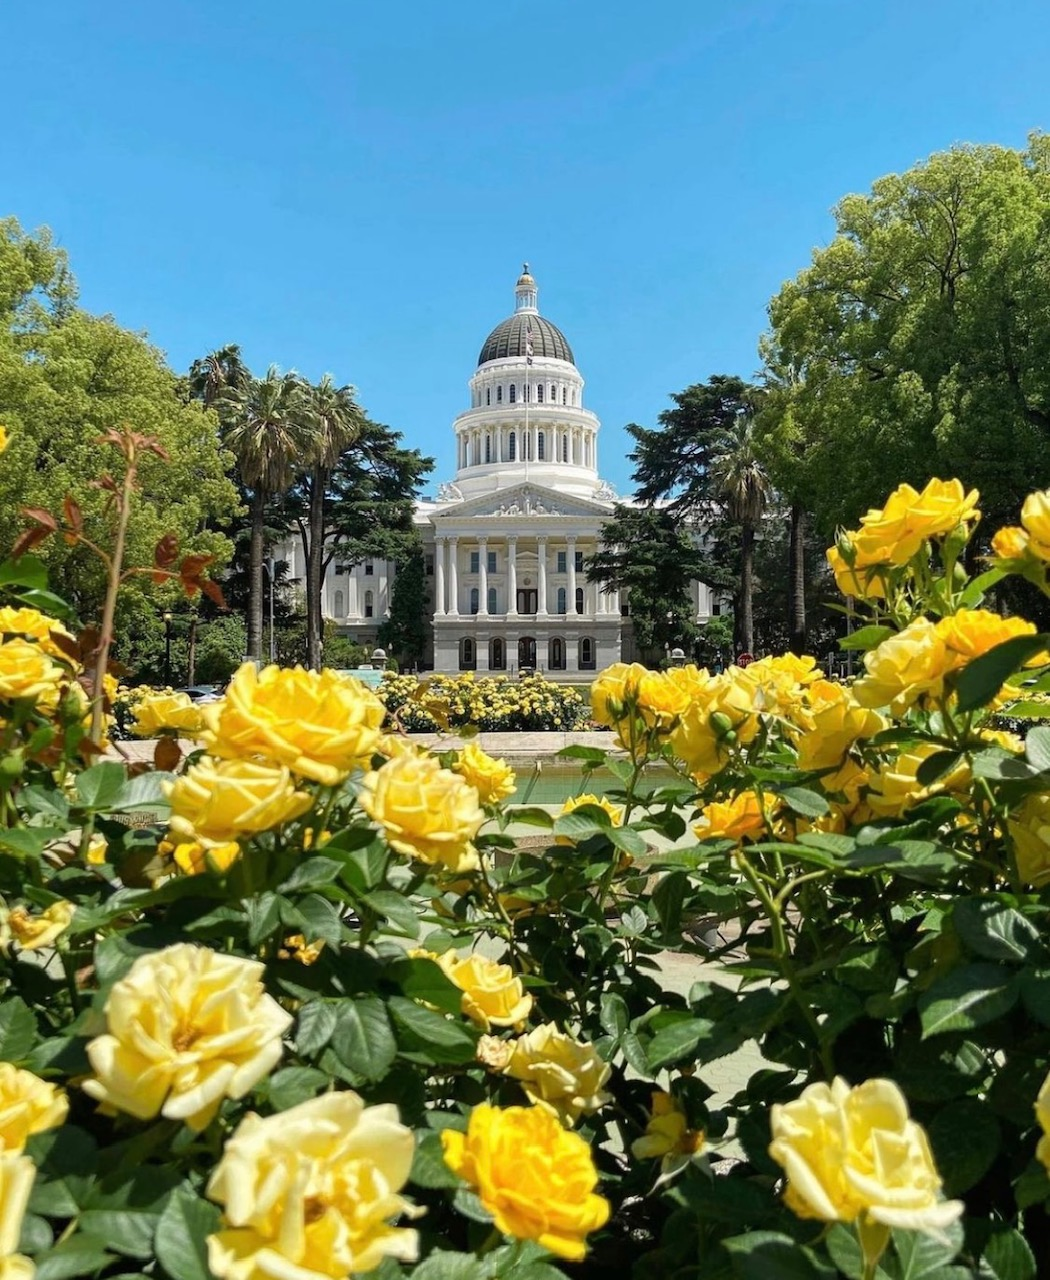 Building in background with yellow roses in foreground, flanked by trees, under a blue summersky.